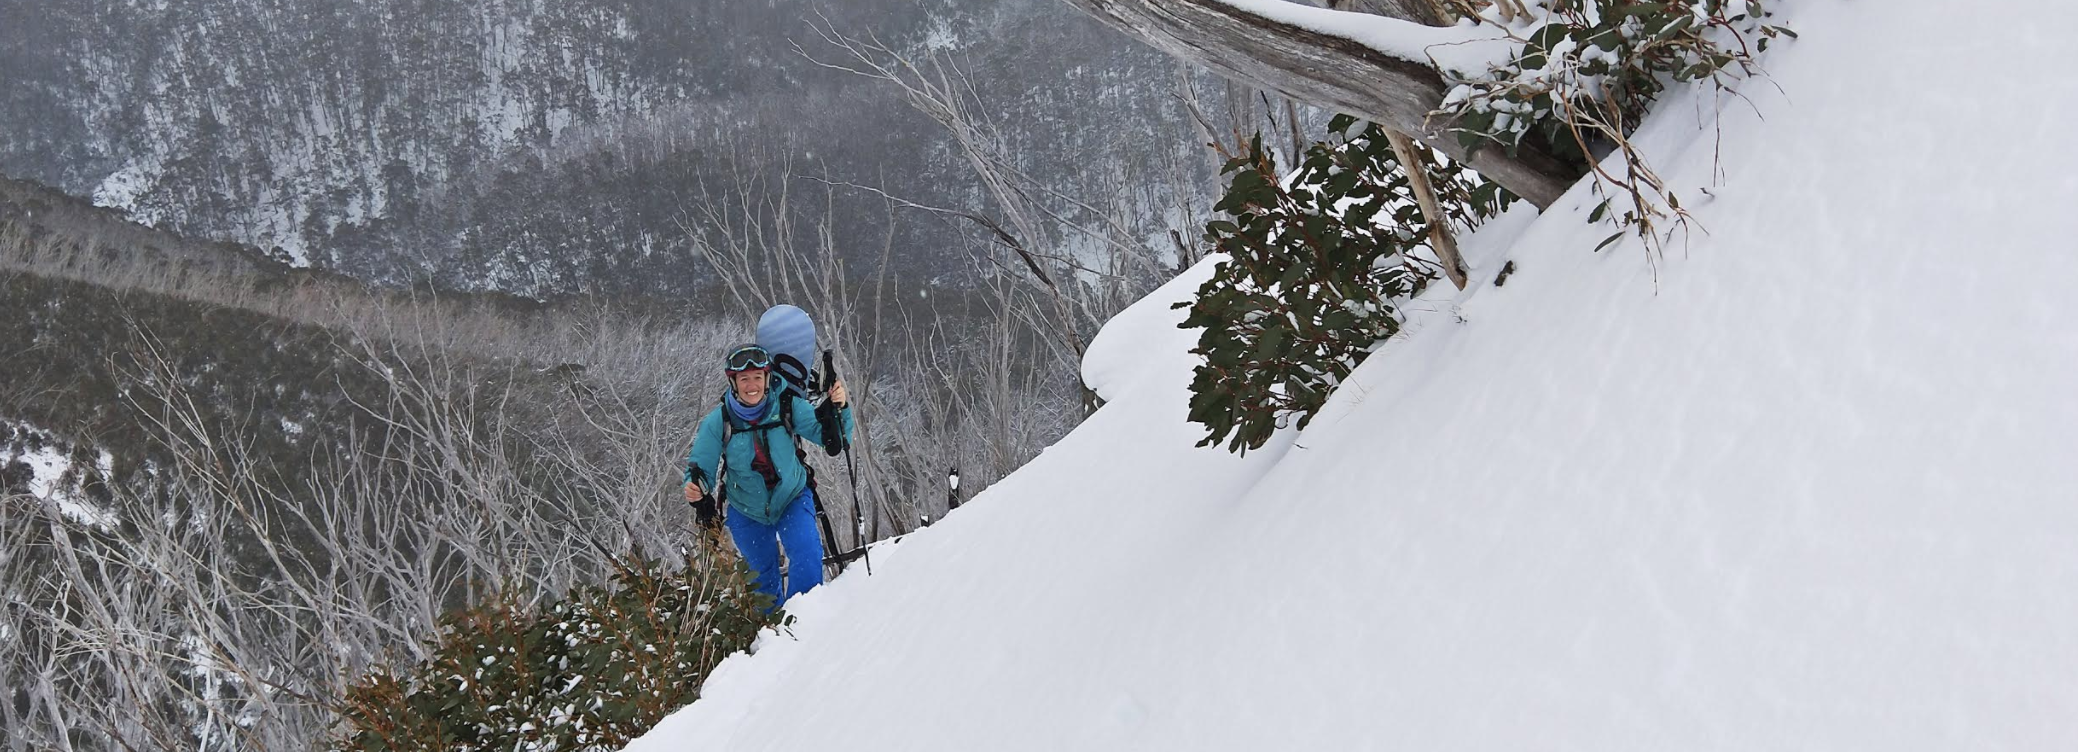 hiking and snowboarding in backcountry